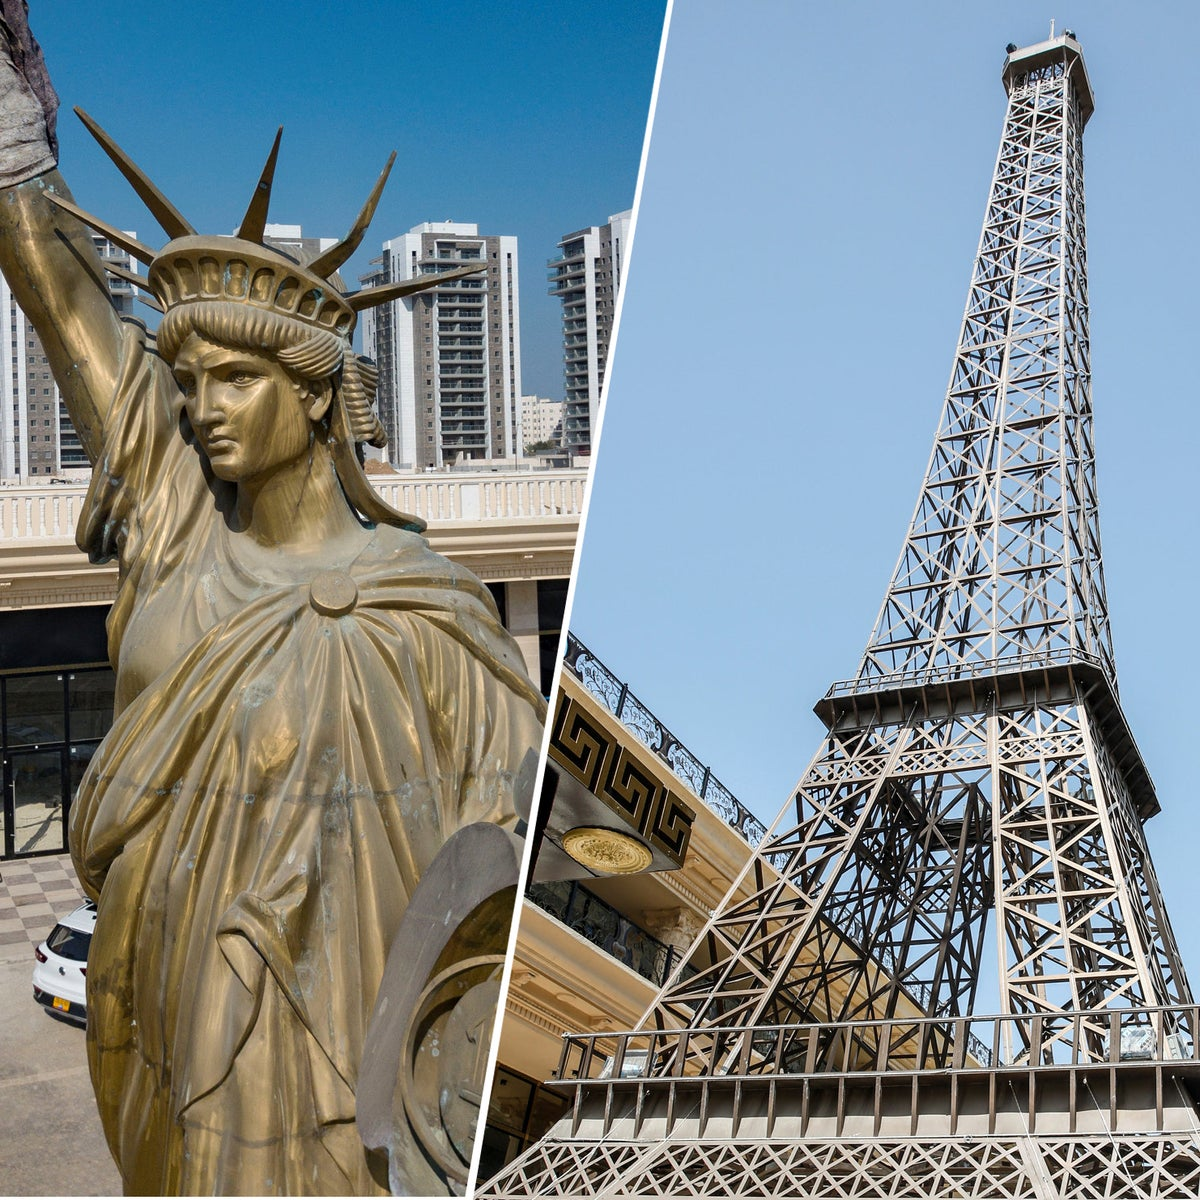 The Statue of Liberty replica in Netivot's Manhattan Project and the model of the Eiffel Tower at the Paris Center in the city.